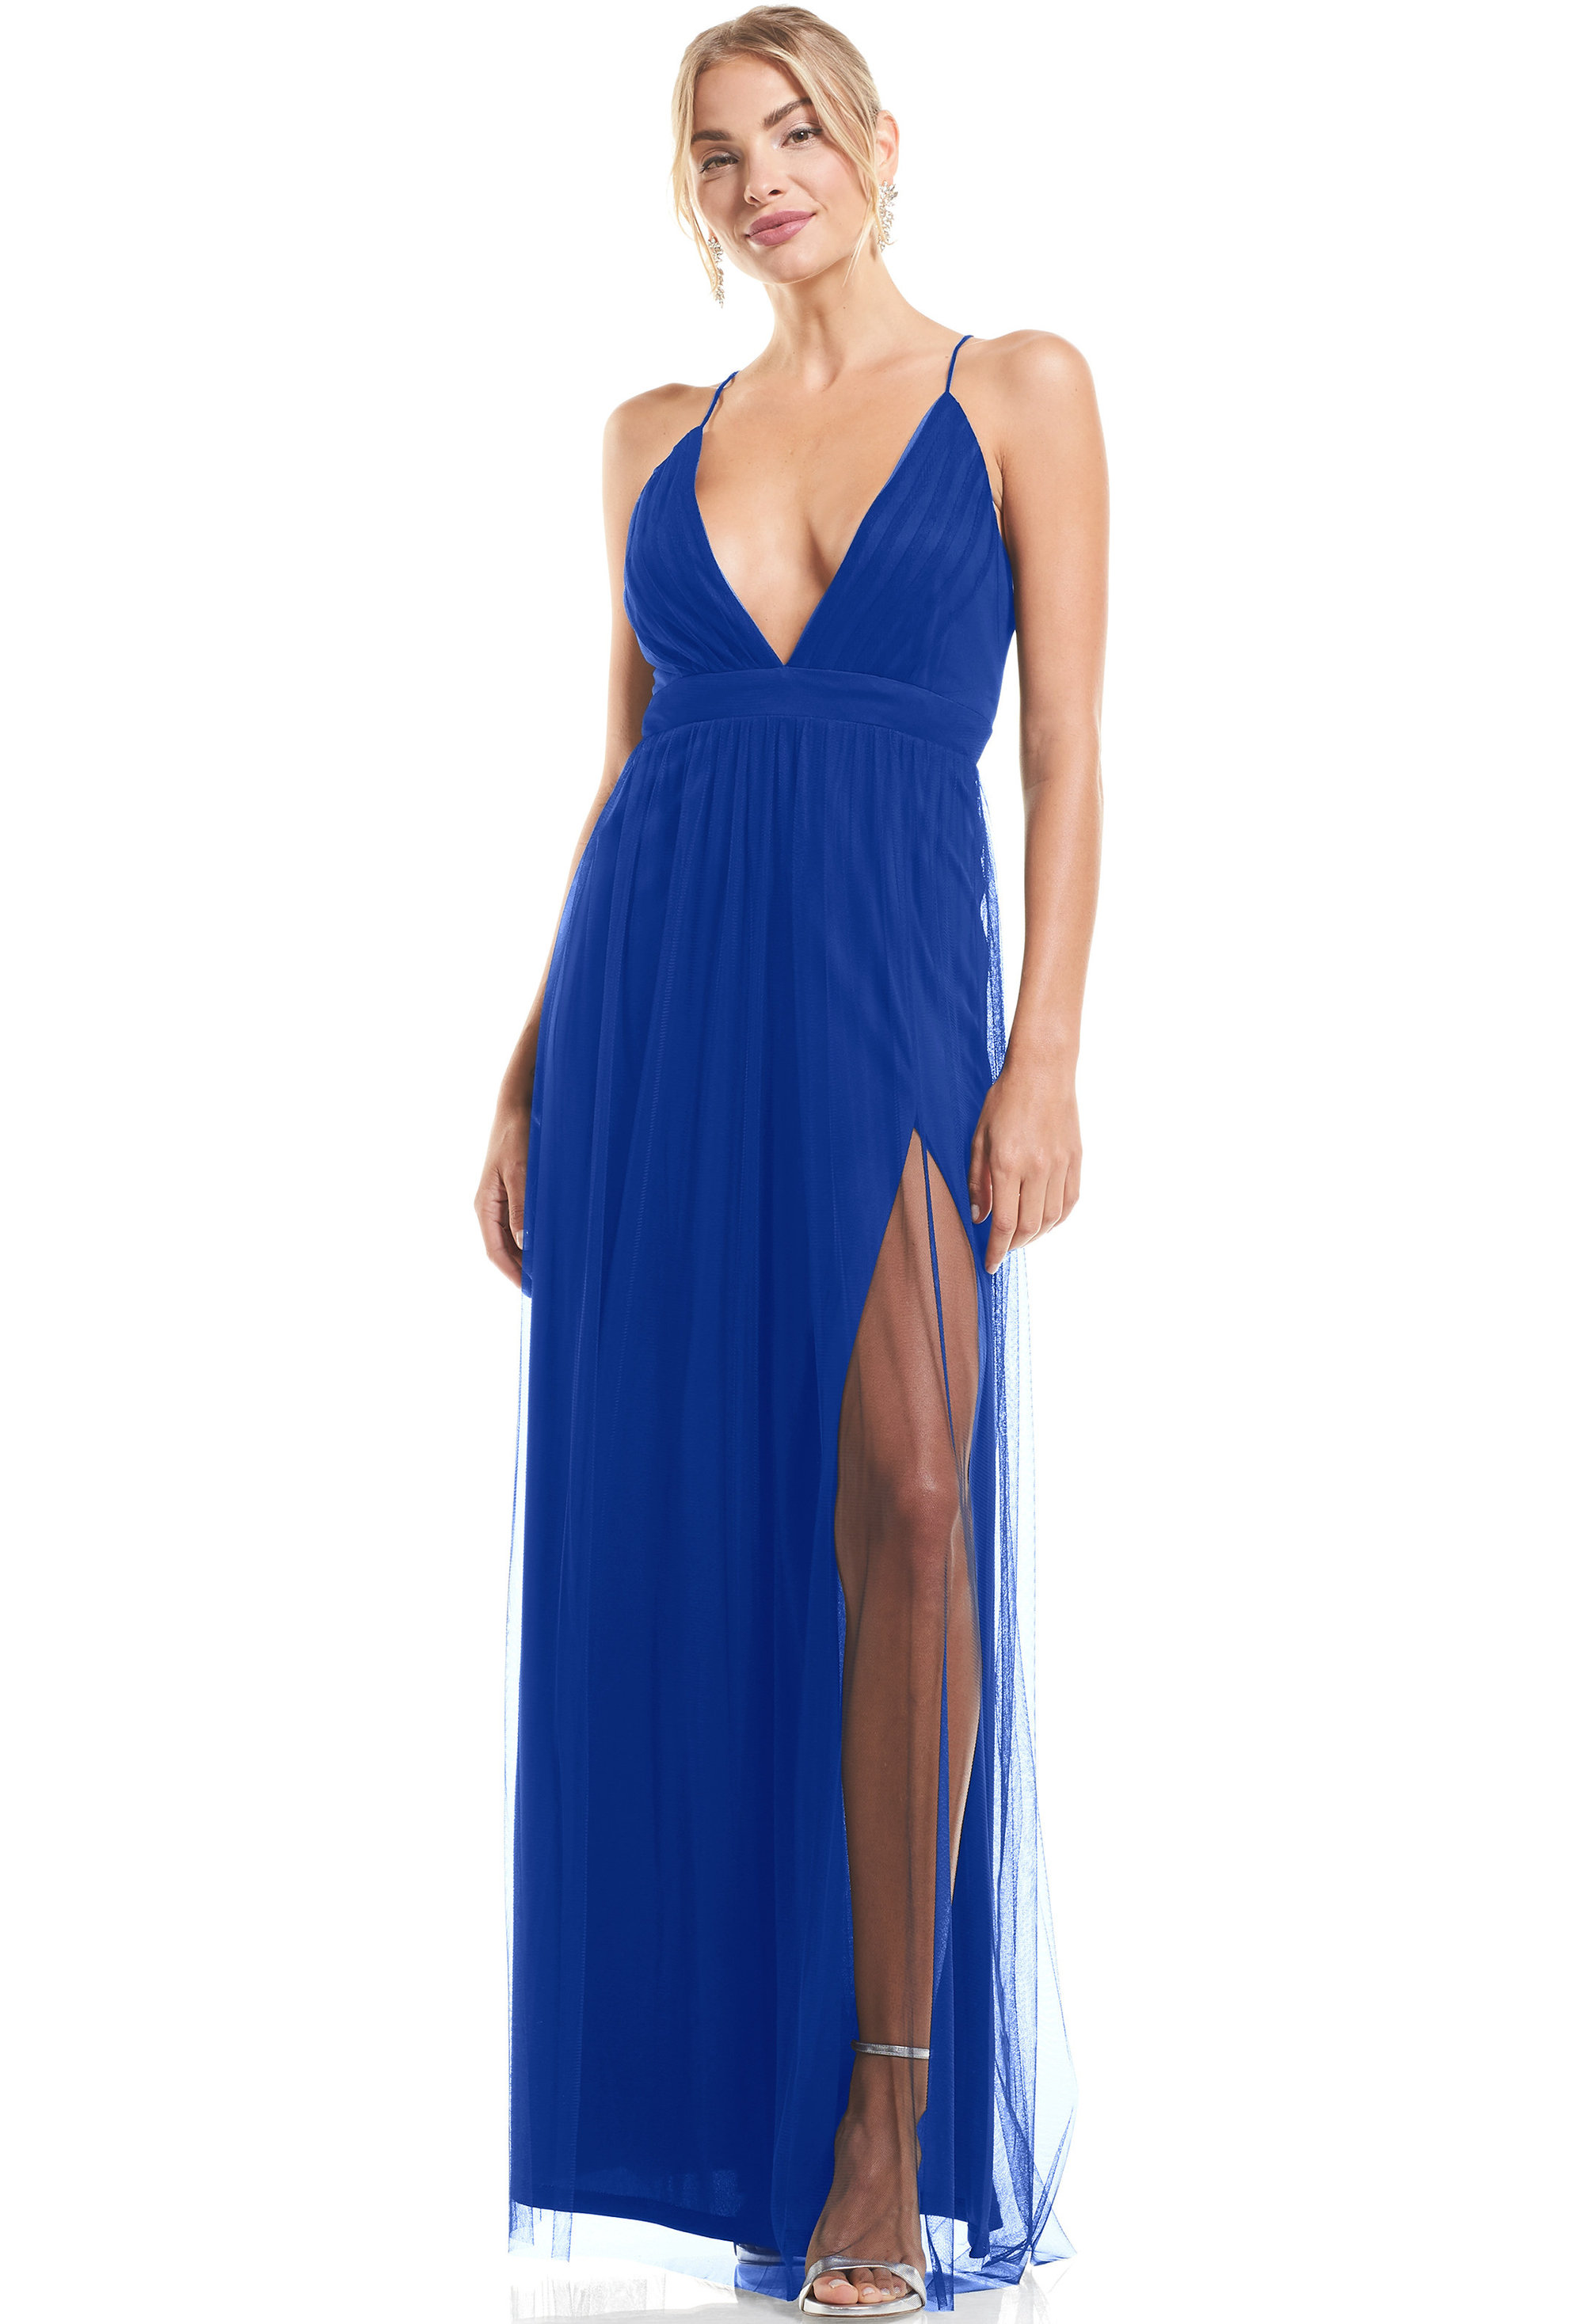 Bill Levkoff HORIZON English Net V-neck A-Line gown, $79.00 Front